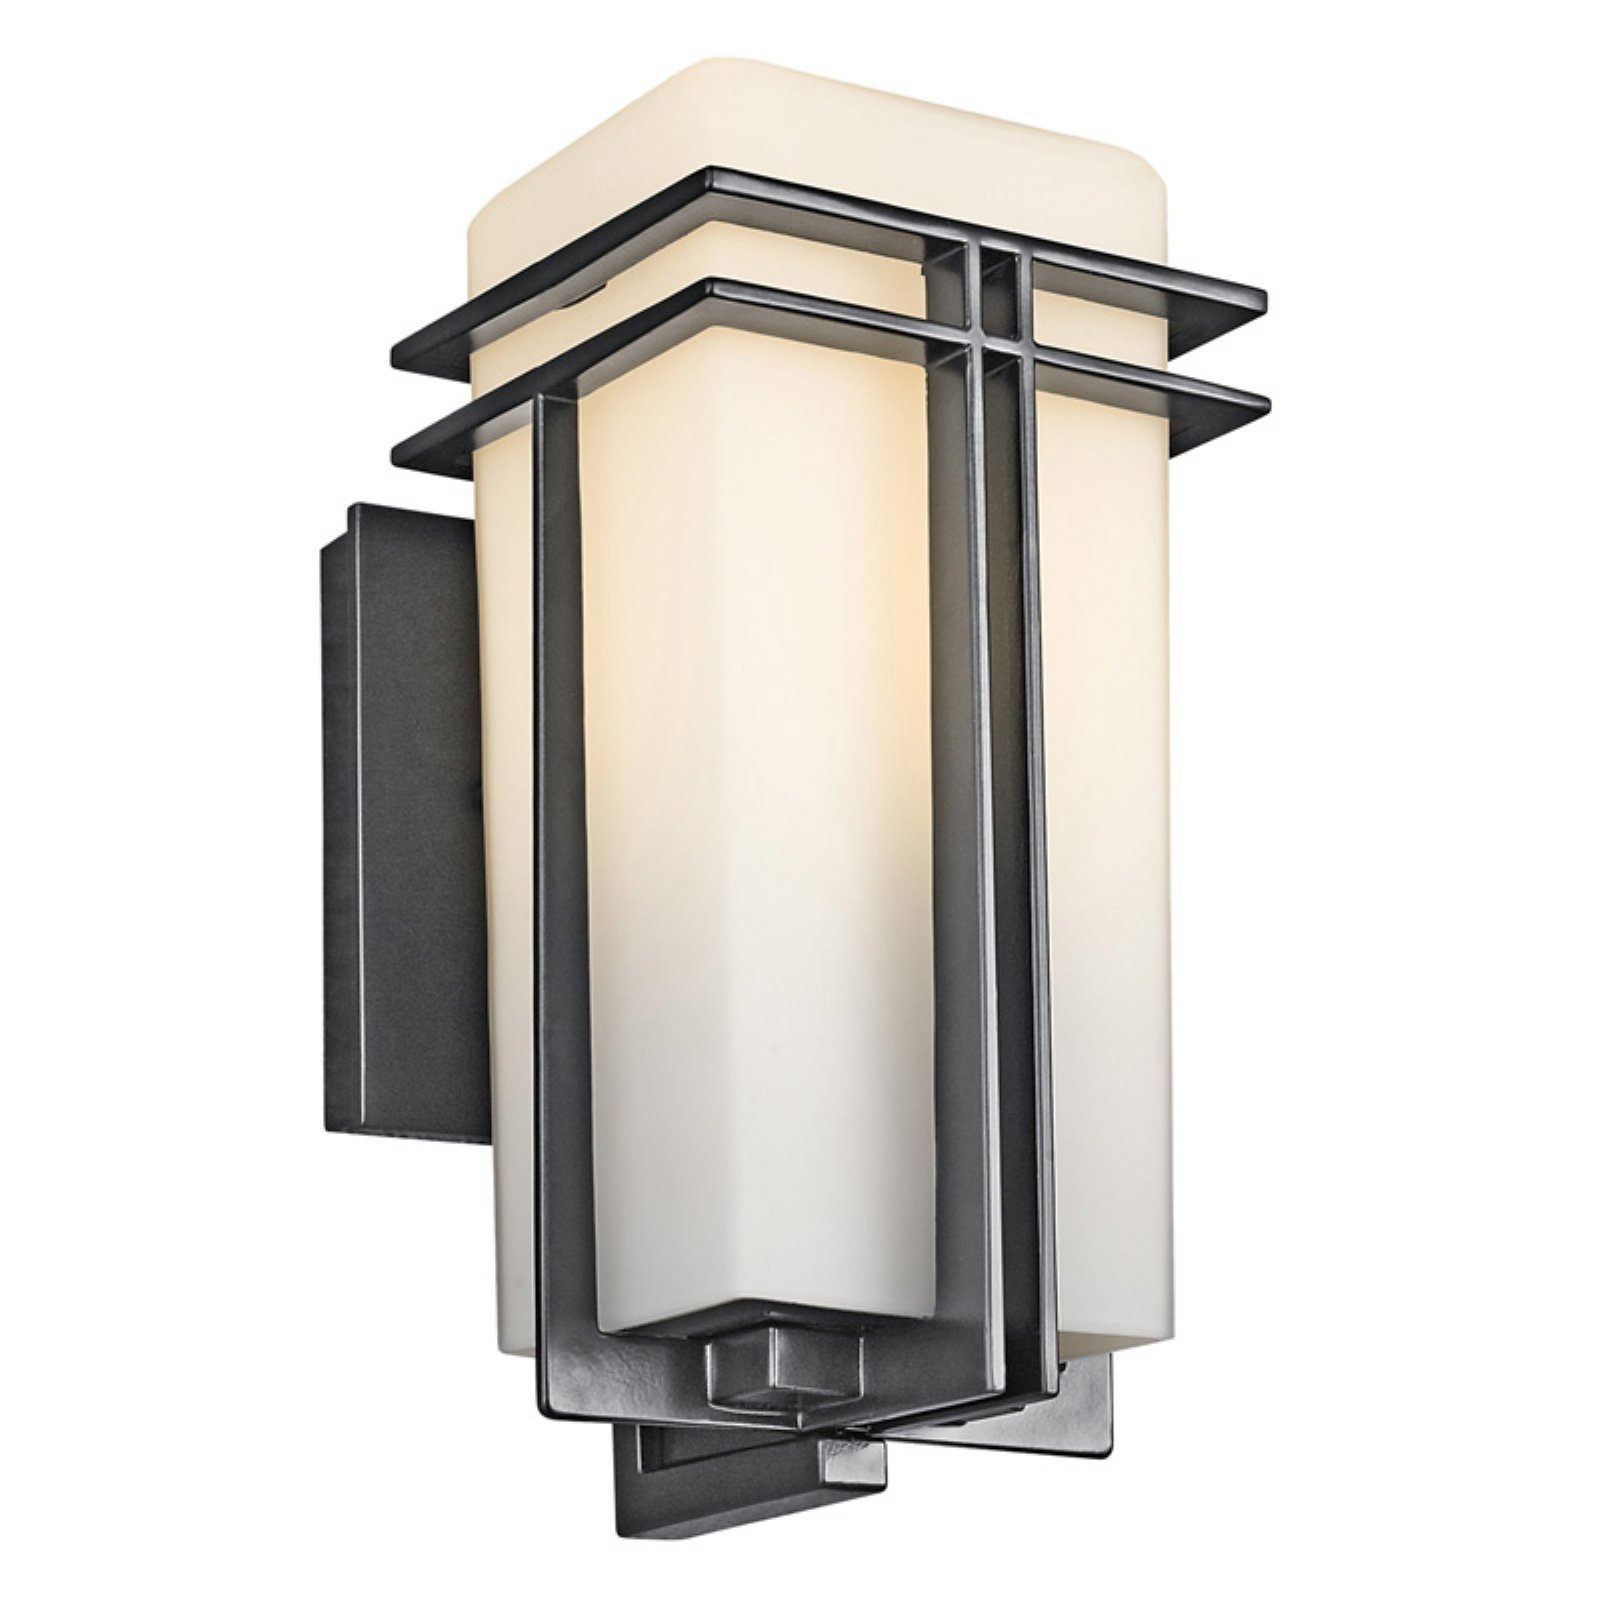 Kichler Tremillo 4920 Outdoor Wall Lantern - Black